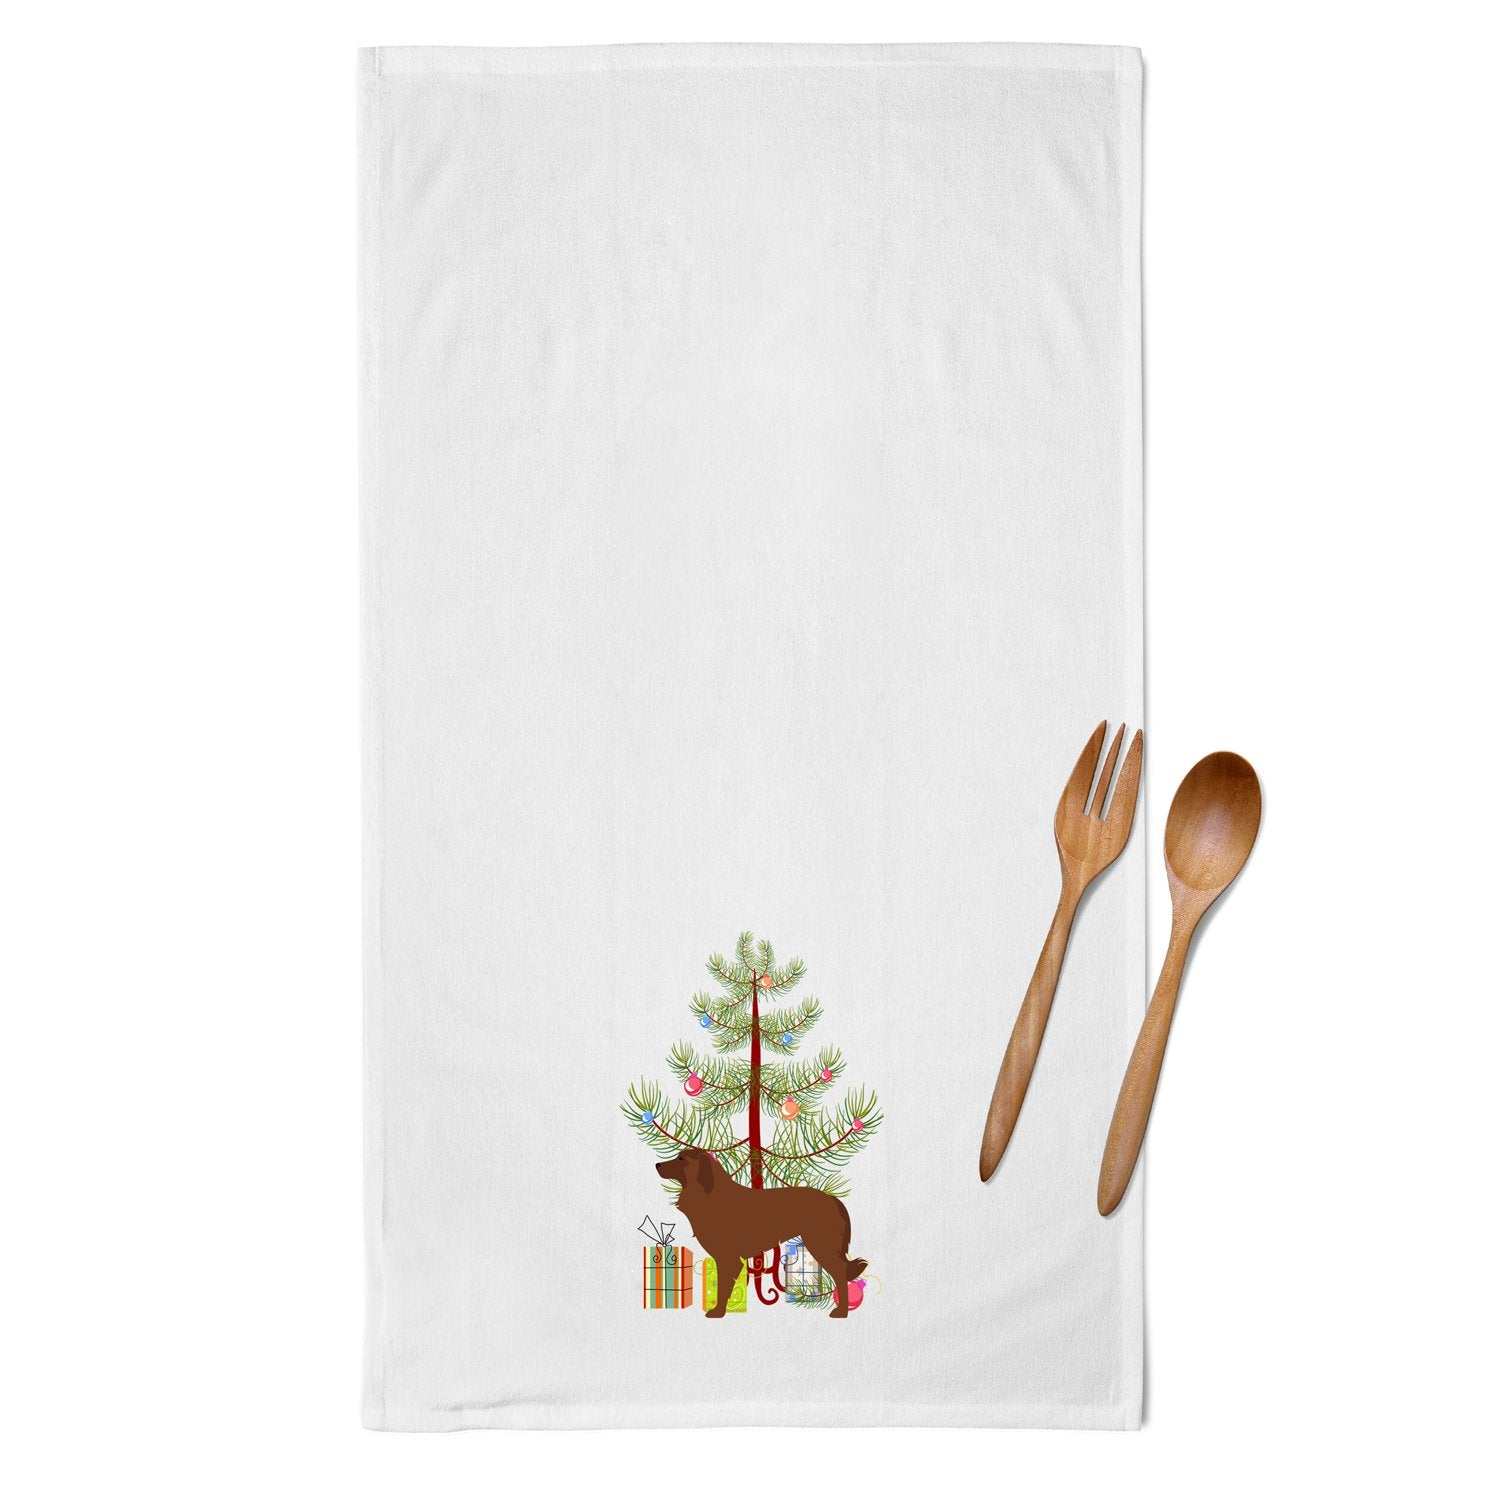 Portuguese Sheepdog Dog Merry Christmas Tree White Kitchen Towel Set of 2 BB2949WTKT by Caroline's Treasures